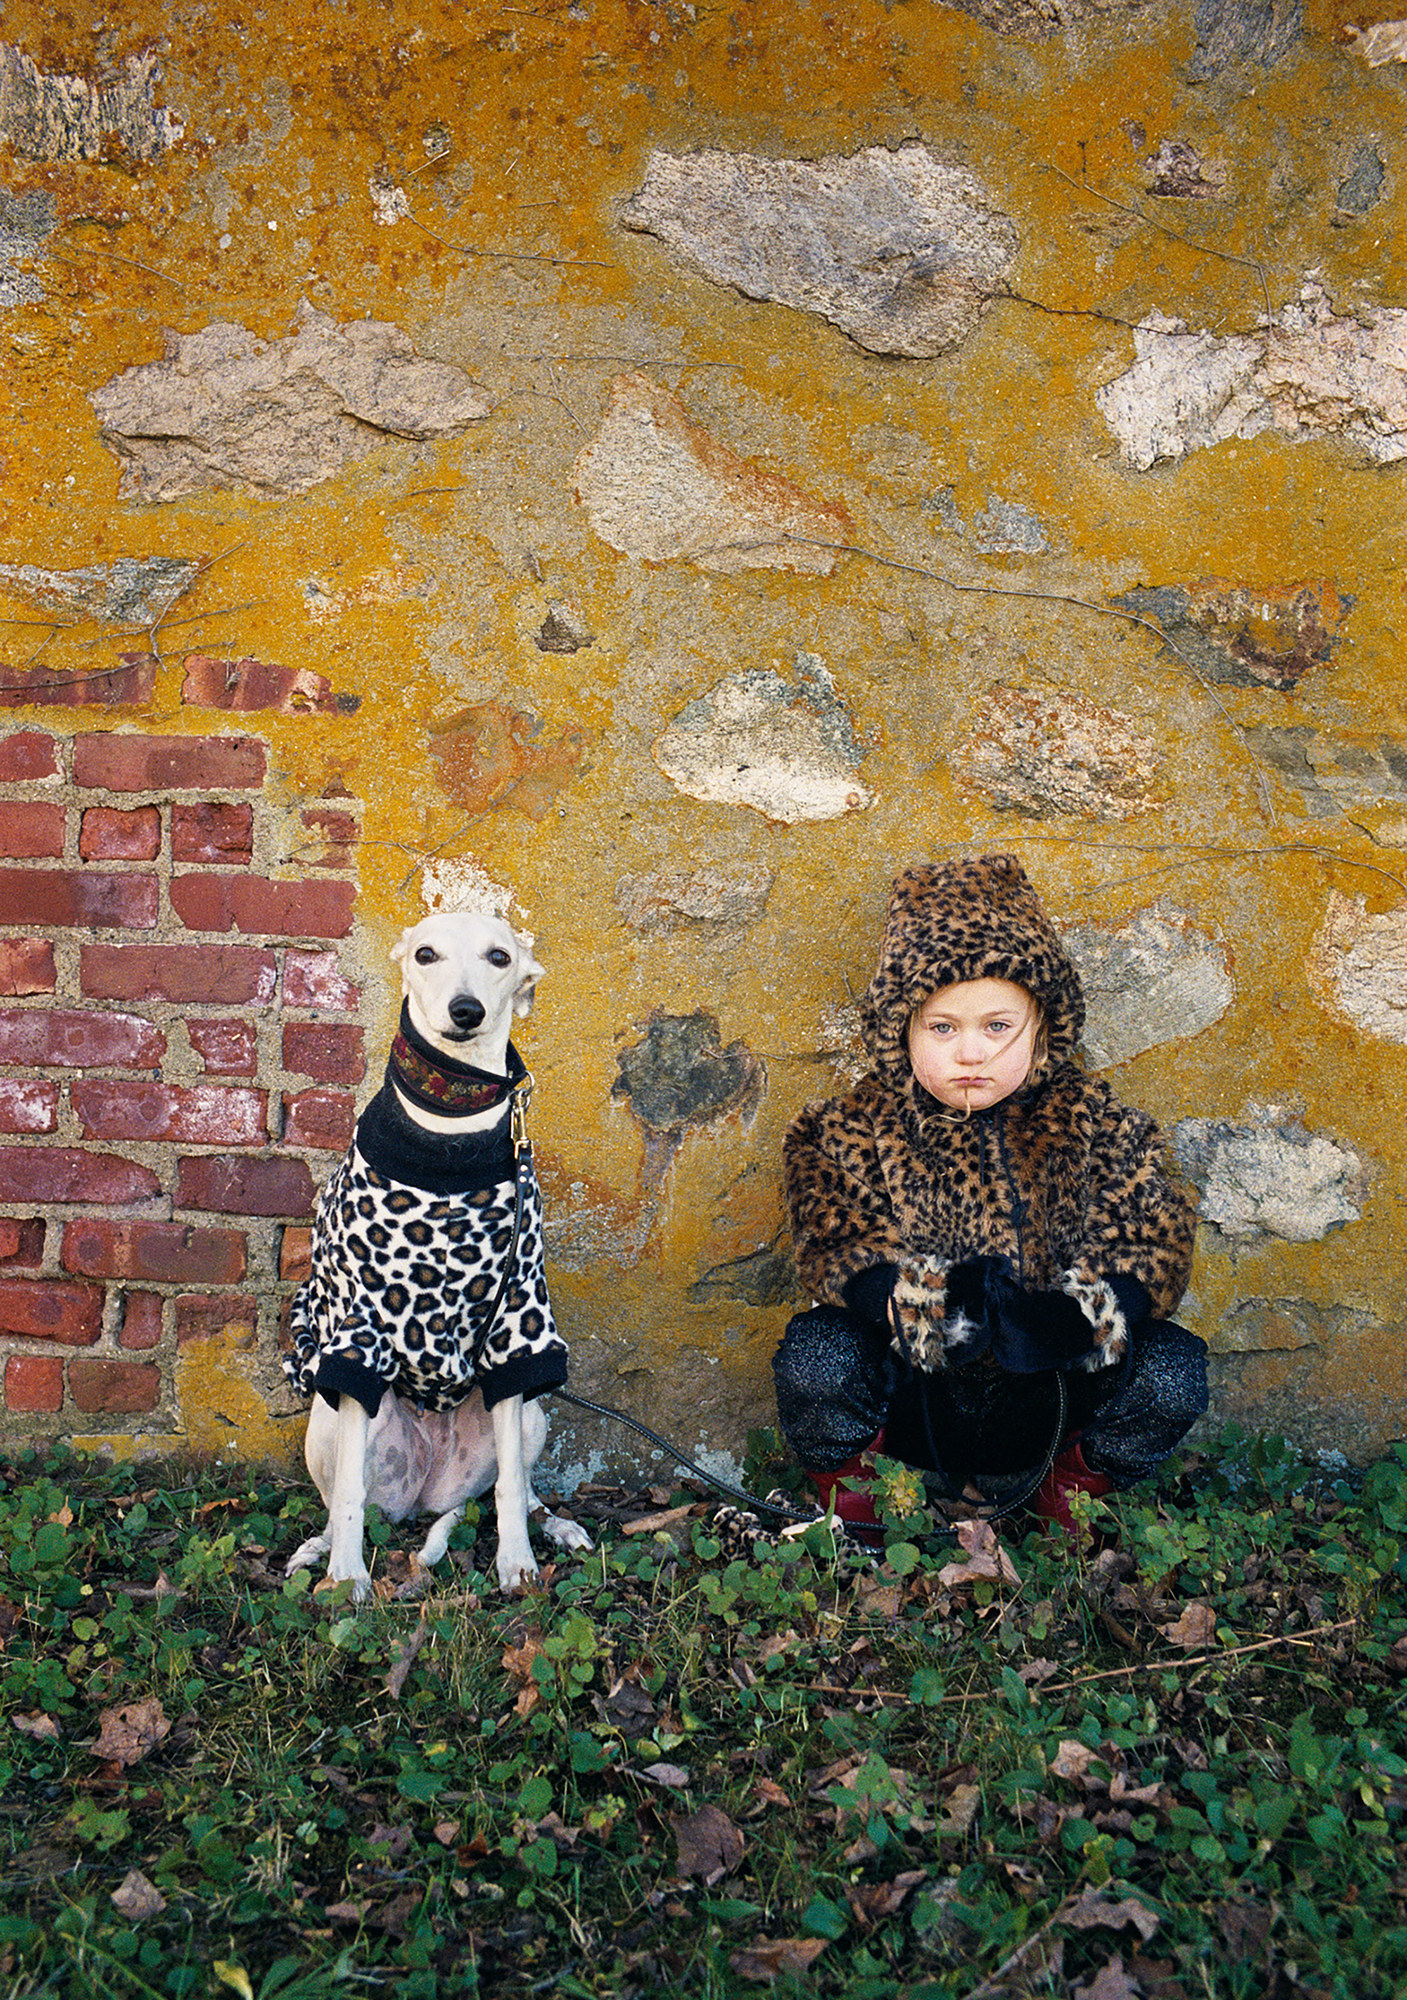 A young girl wearing a cheetah print sweater sits beside a greyhound